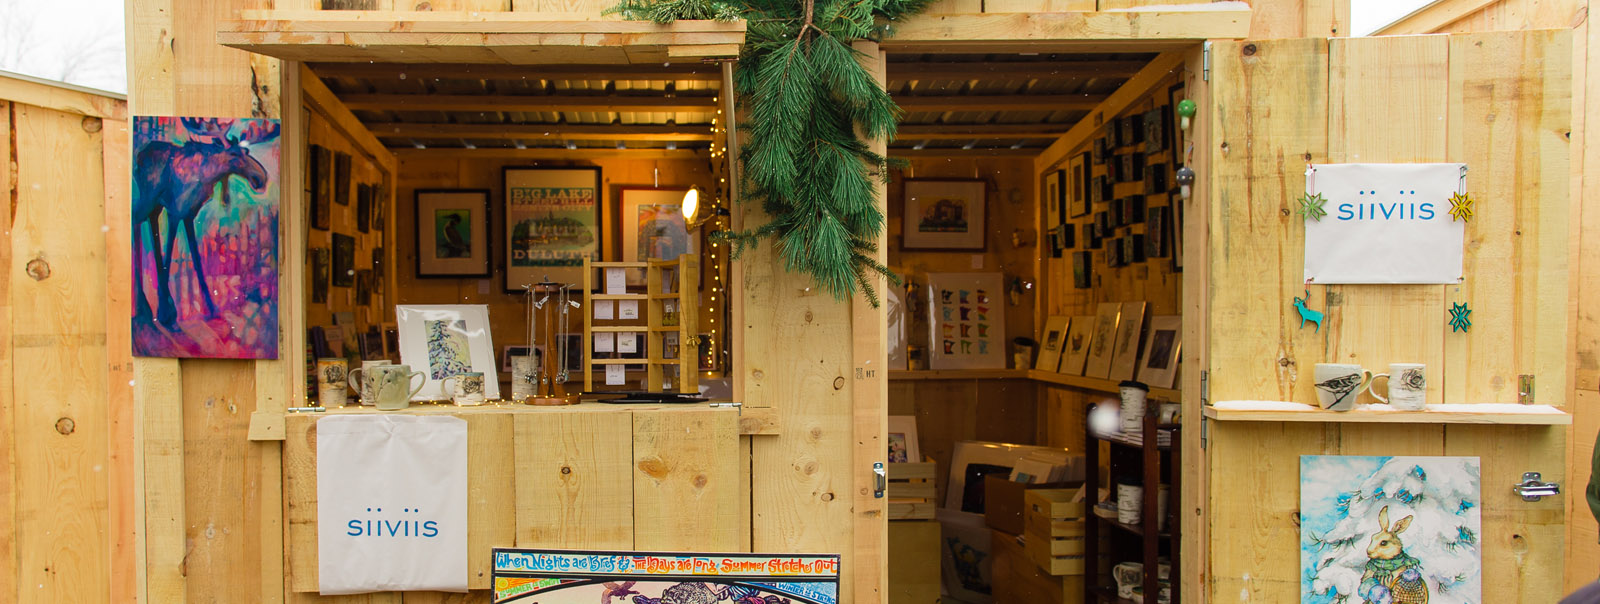 Shop small this season at area vendors selling from locally-made wood cabins